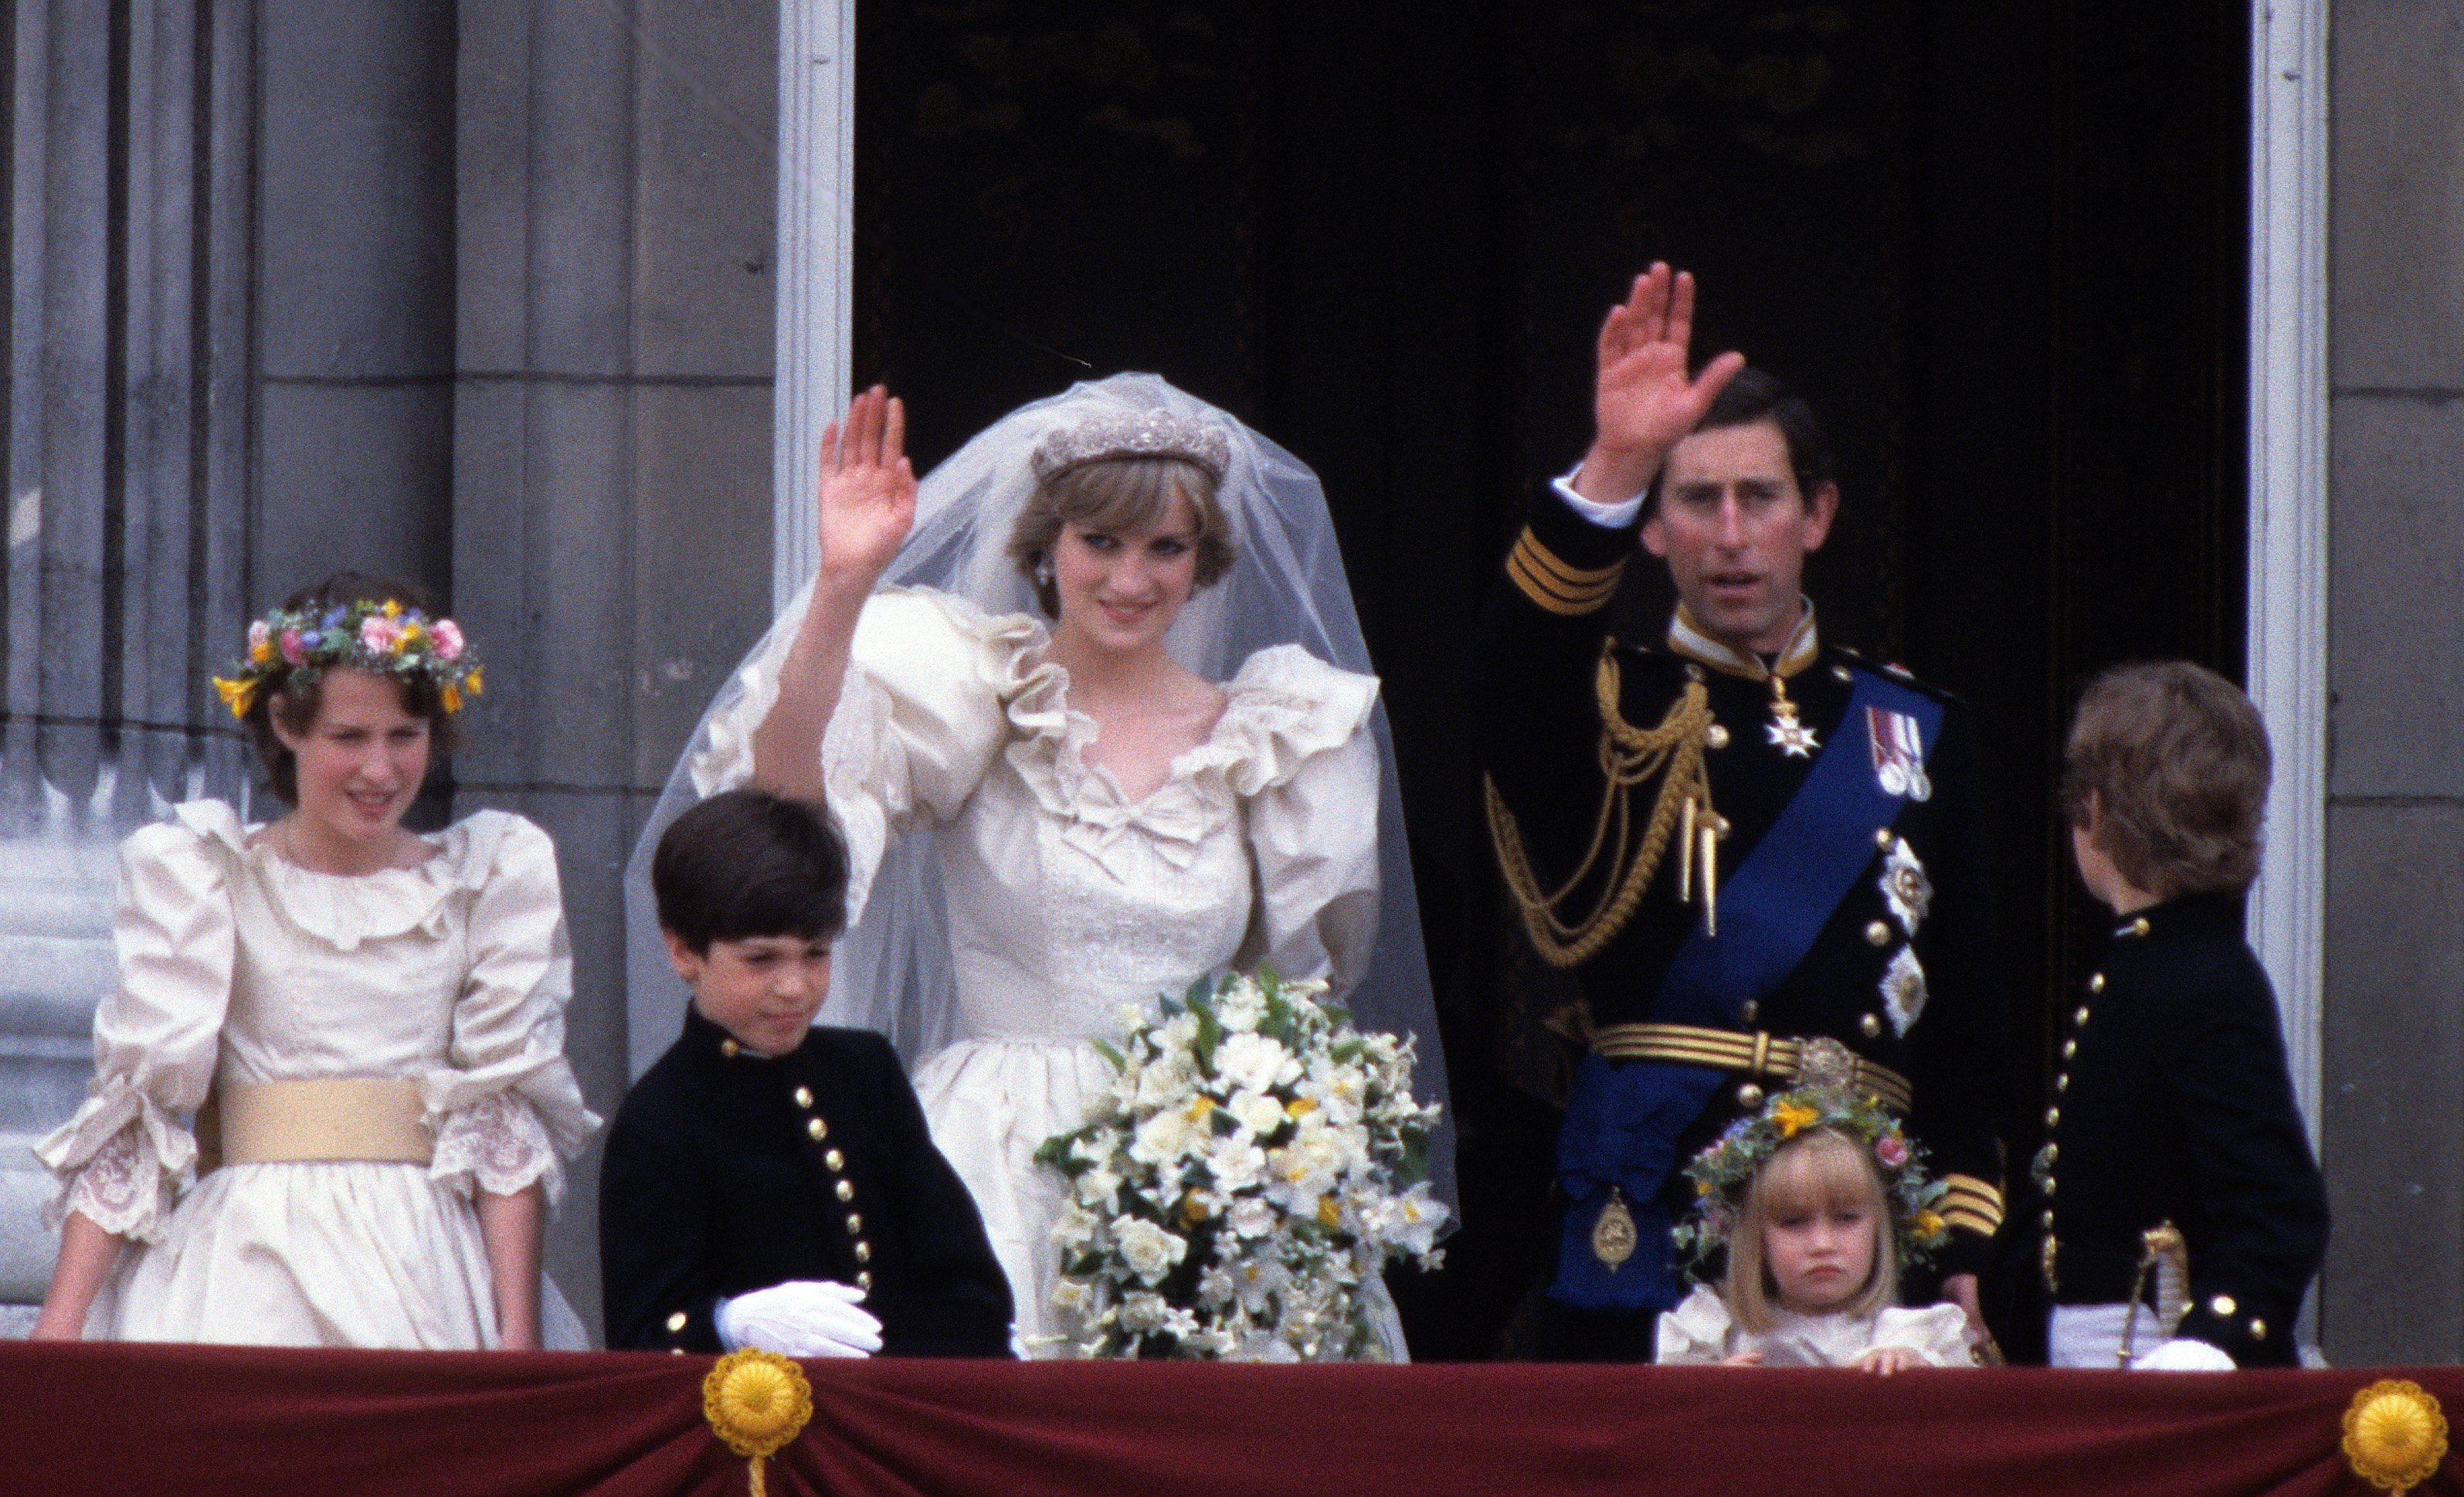 Prince Charles, Prince of Wales and Diana, Princess of Waleswave from the balcony of Buckingham Palace following their wedding July 29, 1981 | Photo: GettyImages